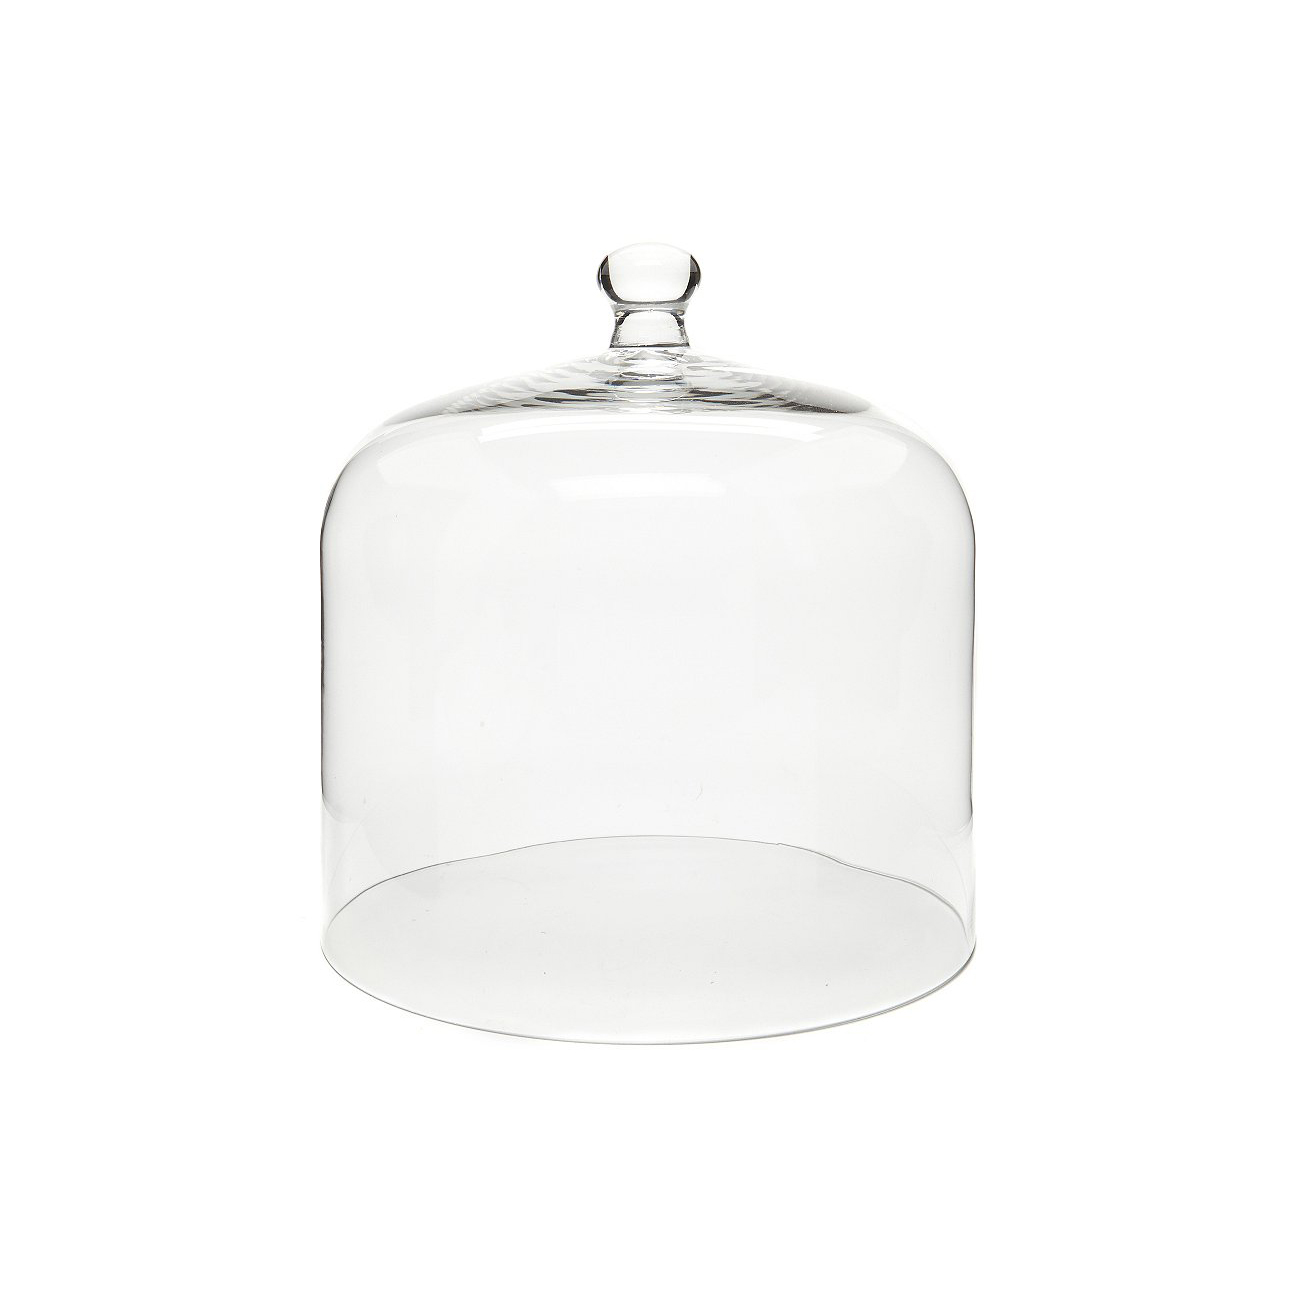 Southern Living Glass Cake Dome